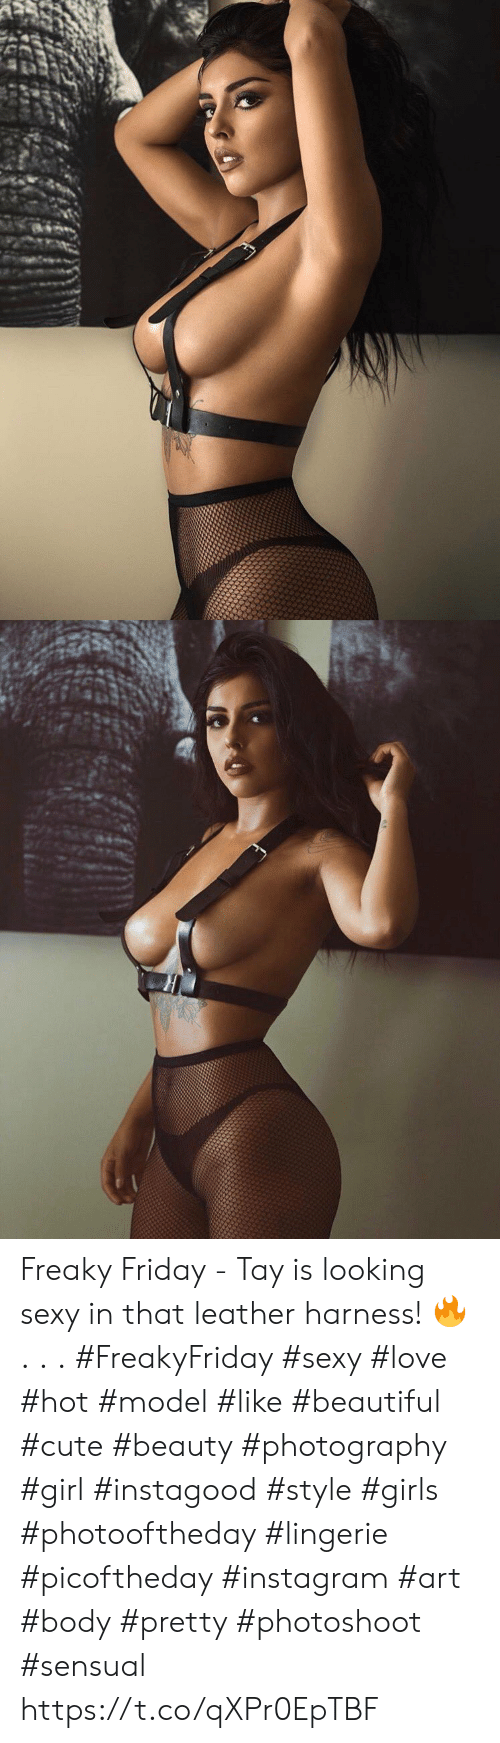 freaky friday: Freaky Friday - Tay is looking sexy in that leather harness! 🔥 . . . #FreakyFriday #sexy #love #hot #model #like #beautiful #cute #beauty #photography #girl #instagood #style #girls #photooftheday #lingerie #picoftheday #instagram #art #body #pretty #photoshoot #sensual https://t.co/qXPr0EpTBF